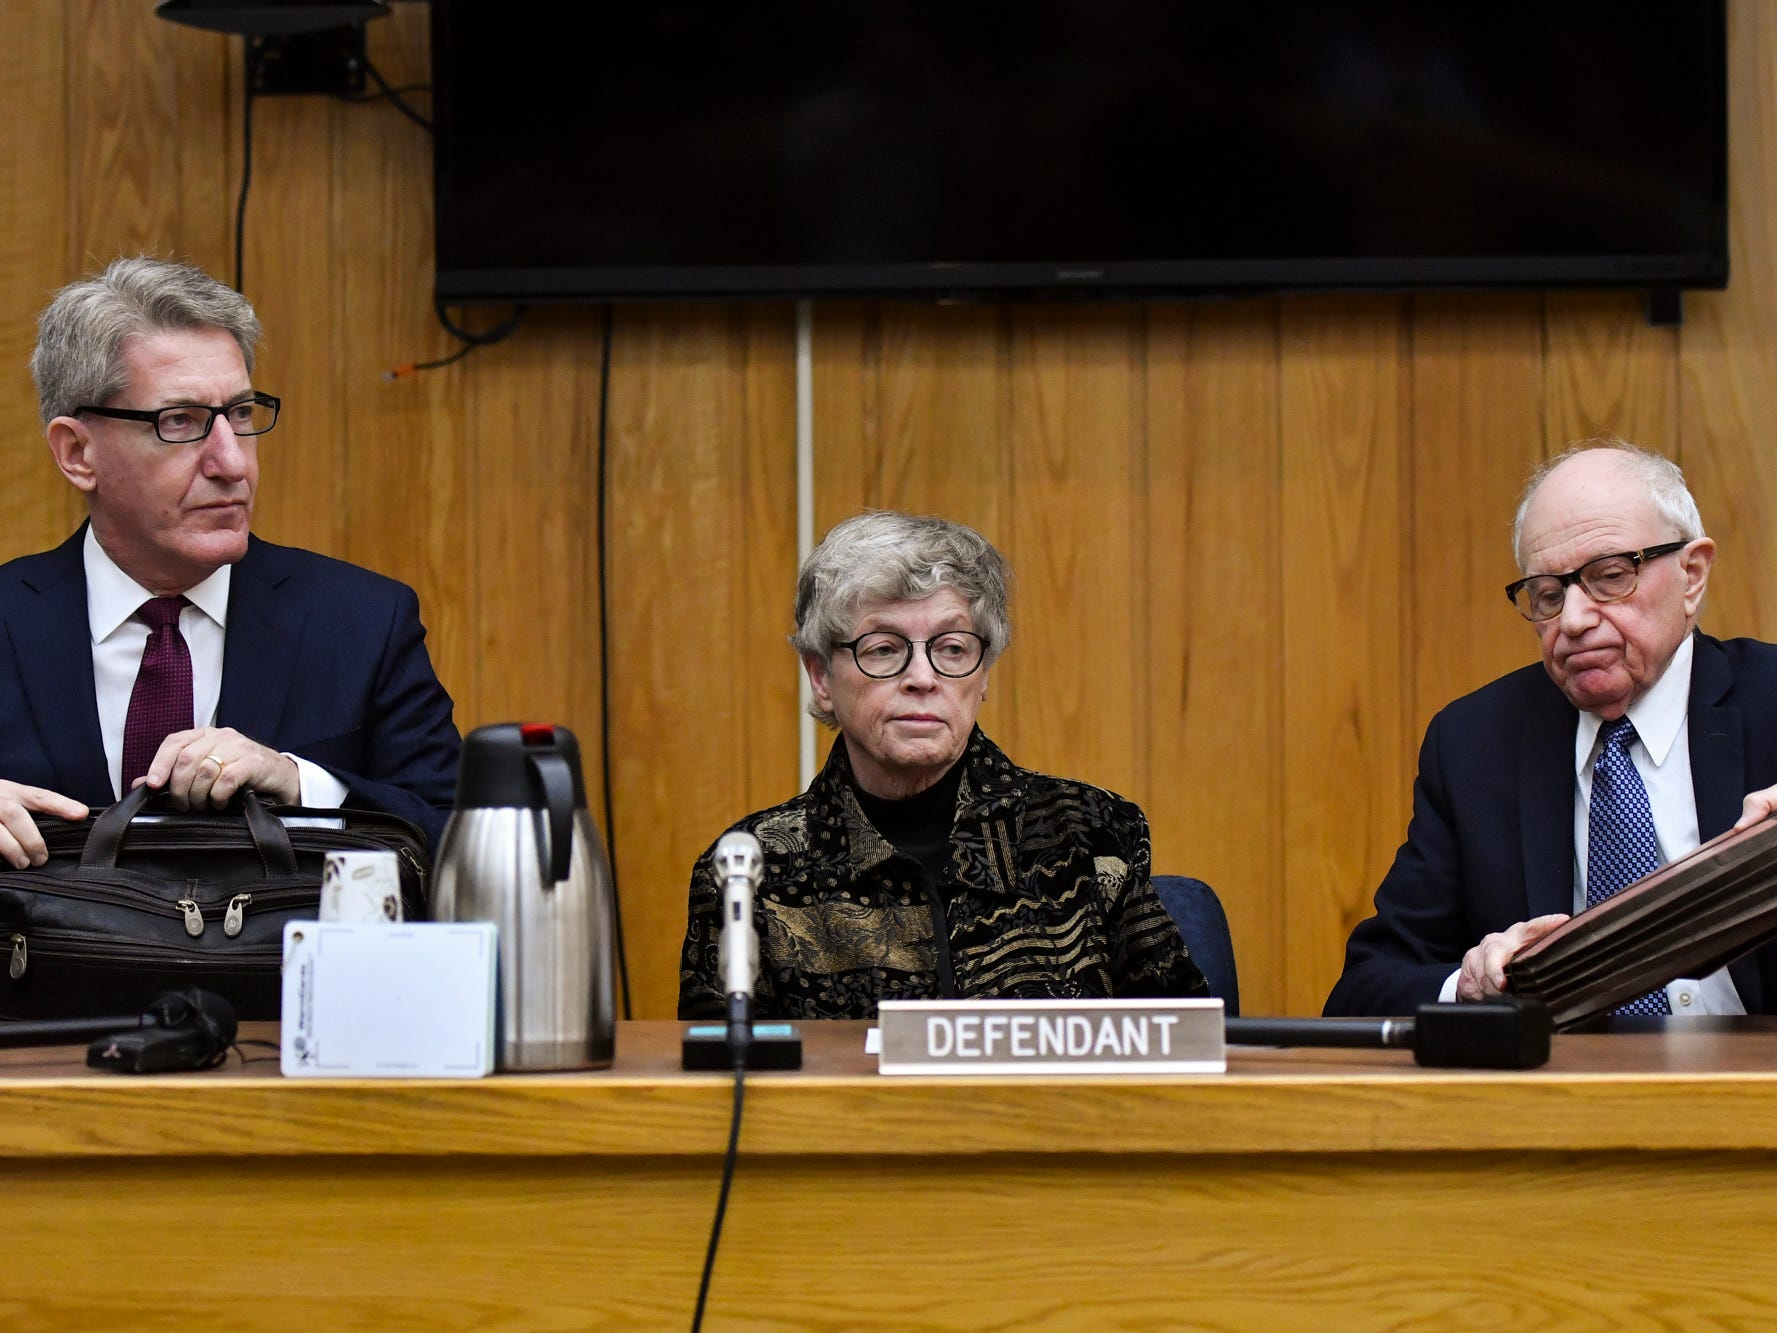 What to expect: Lou Anna Simon preliminary hearing on charges she lied about Larry Nassar